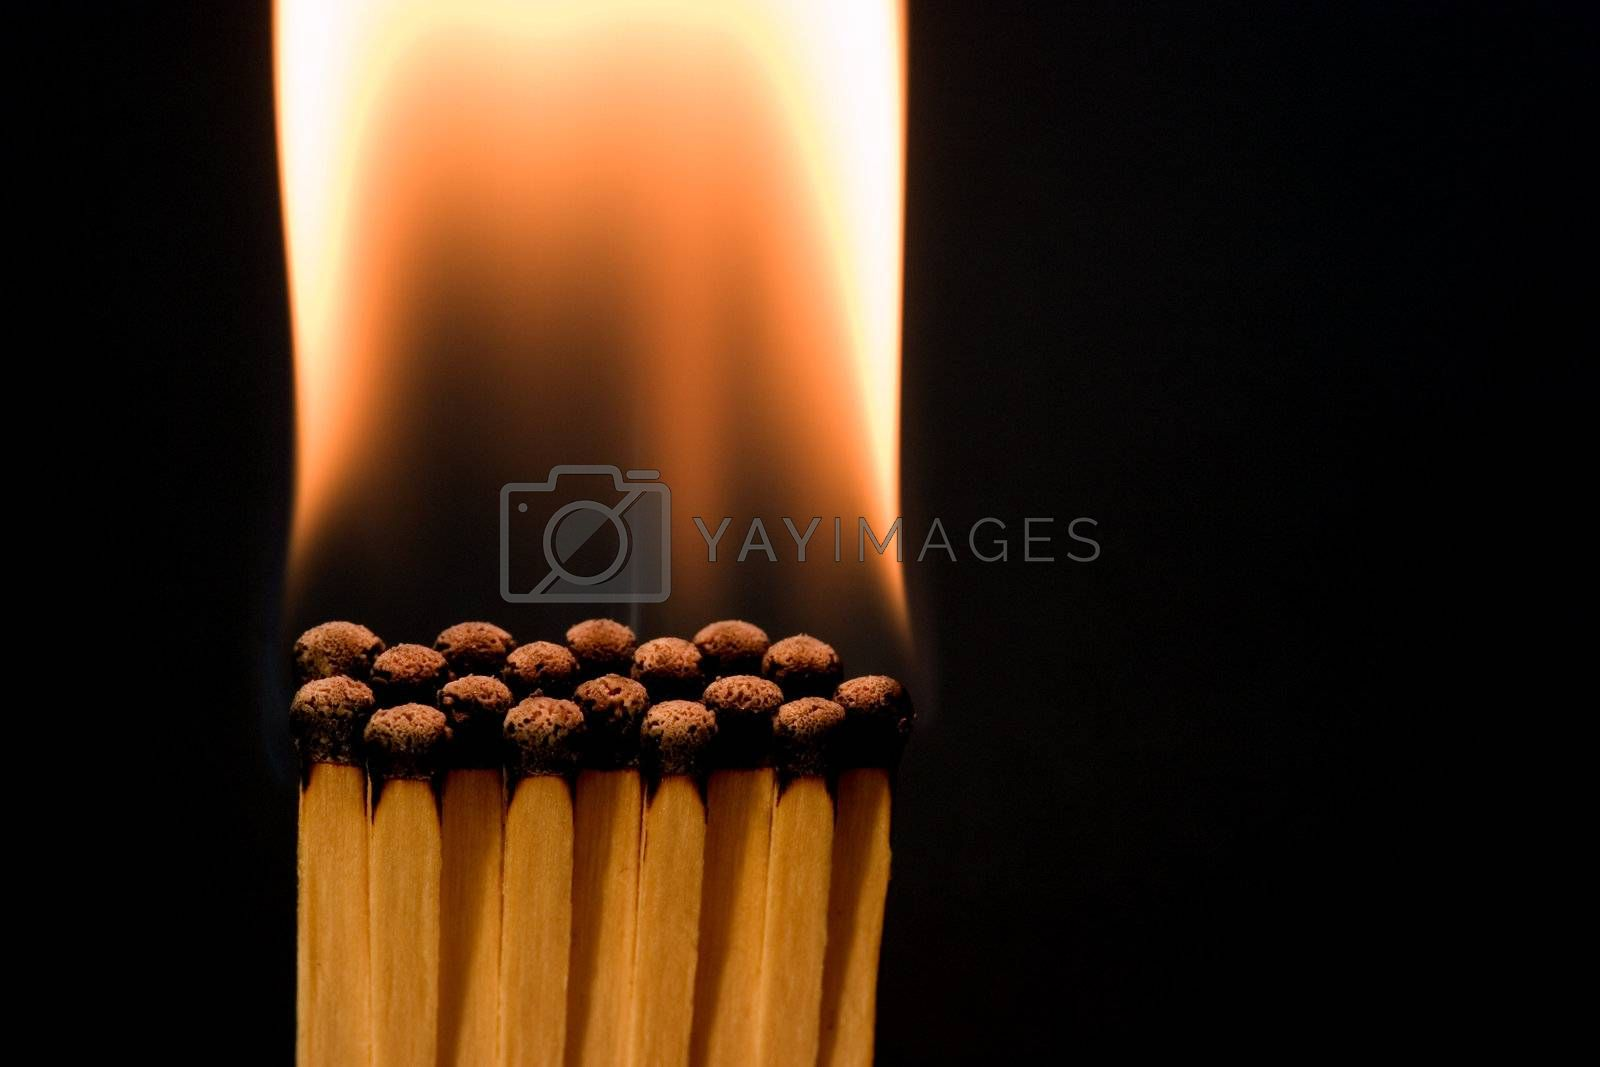 Matches burned after chain reaction